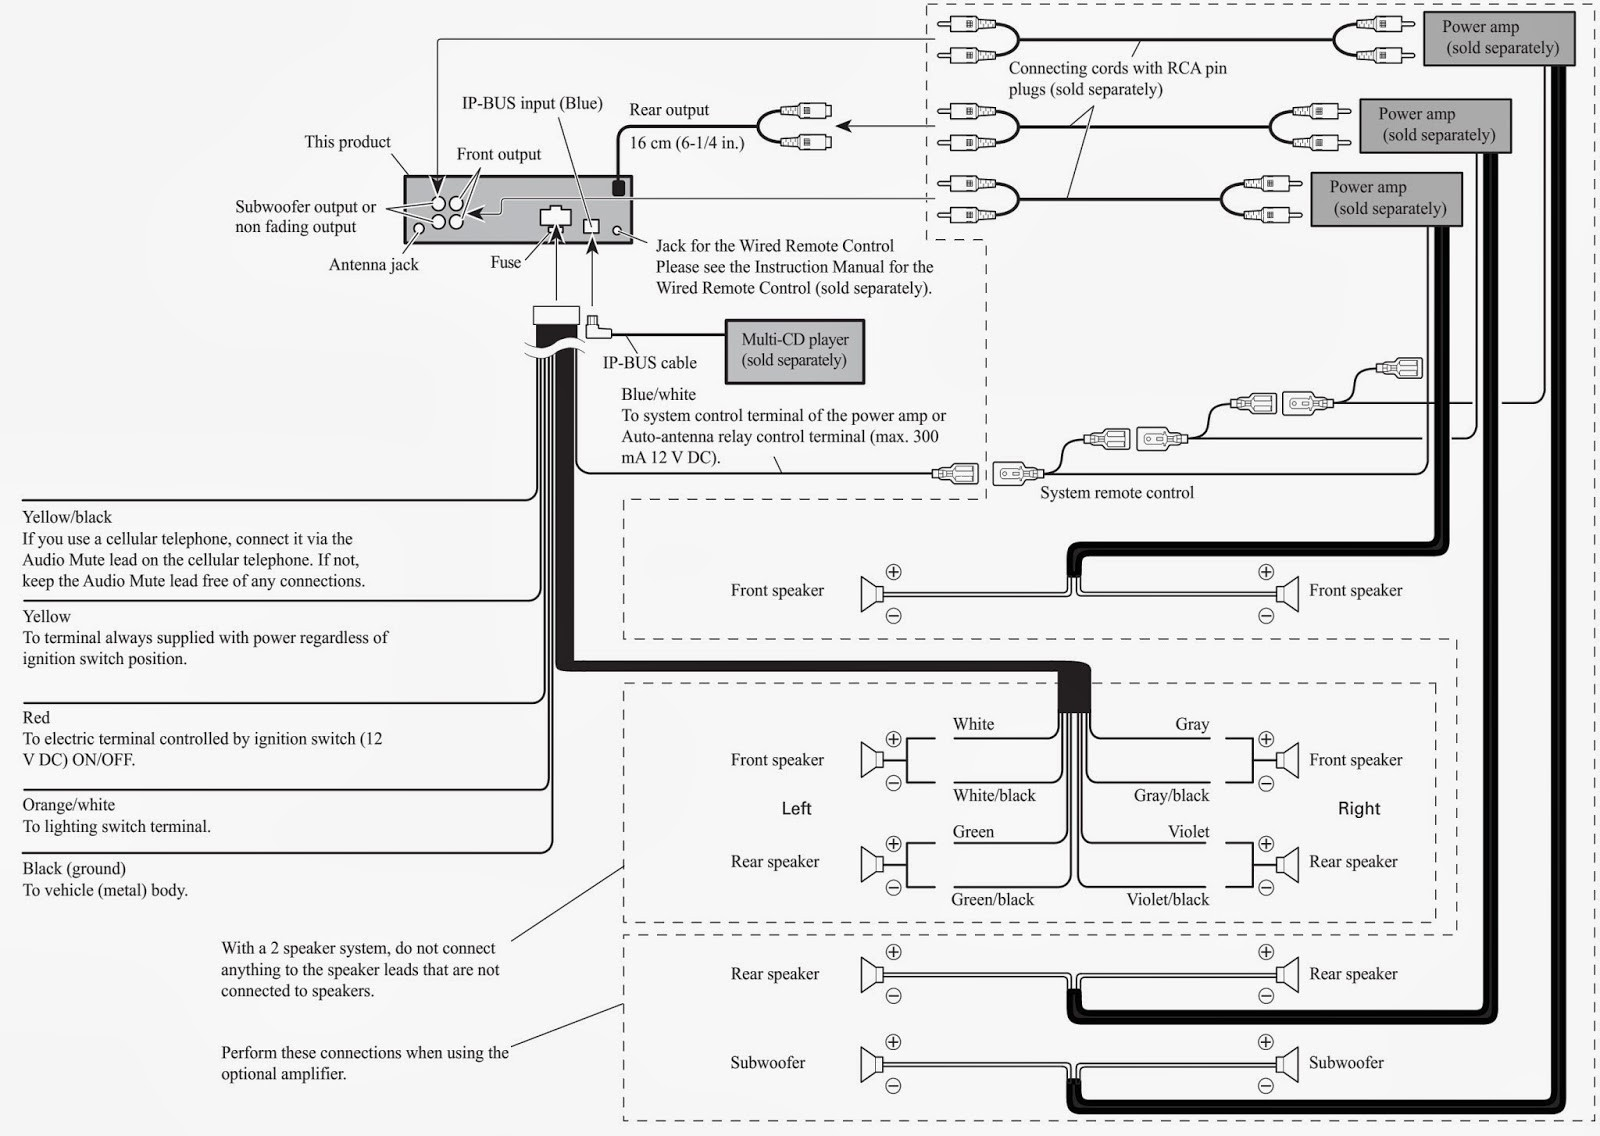 DY_8656] X560Bt Wiring Diagram Free Image About Wiring Diagram And SchematicTeria Norab Nnigh Pical Venet Mill Pap Mang Phae Mohammedshrine Librar  Wiring 101